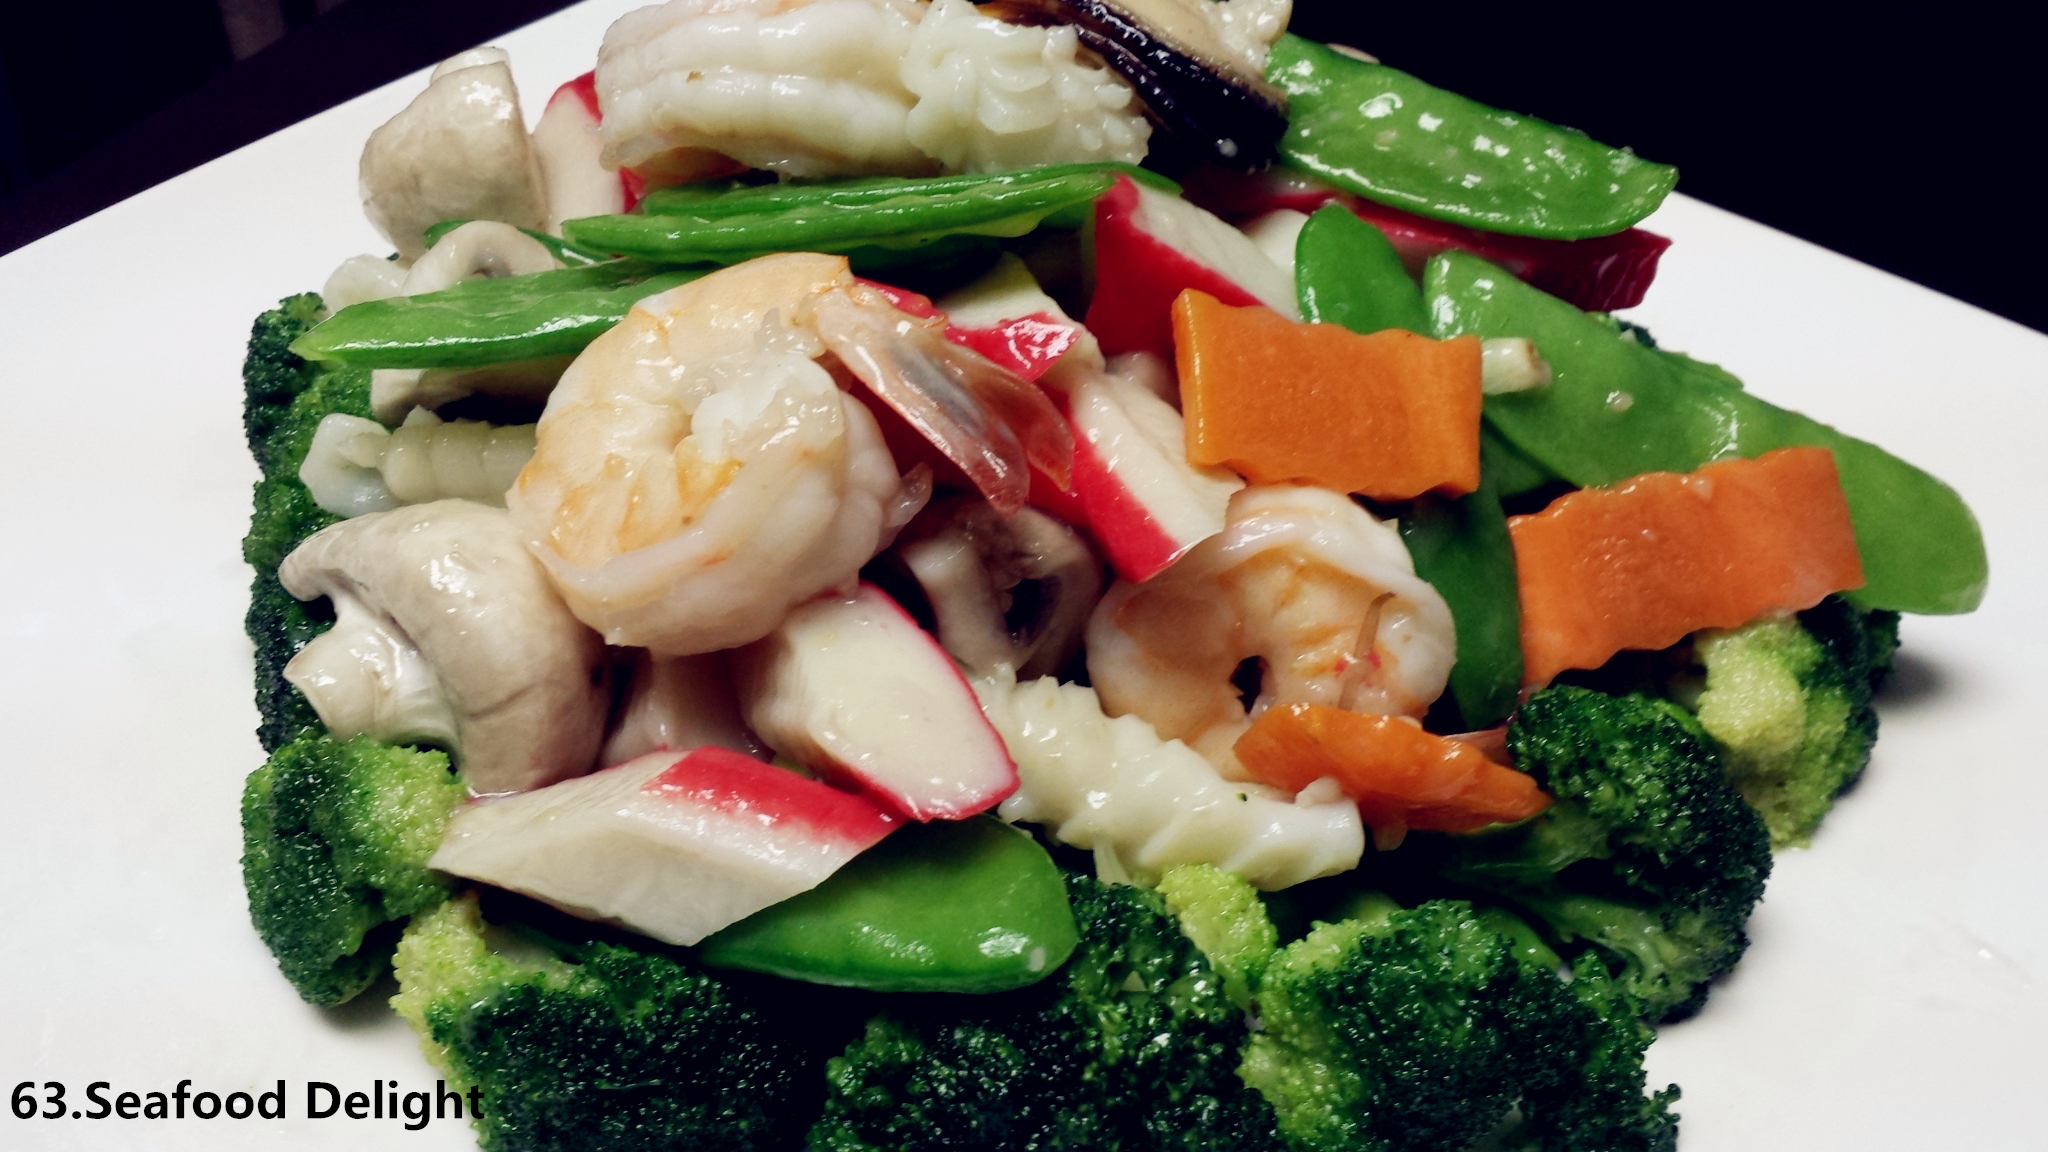 63 seafood delight asian fusion 168 for Asian 168 cuisine